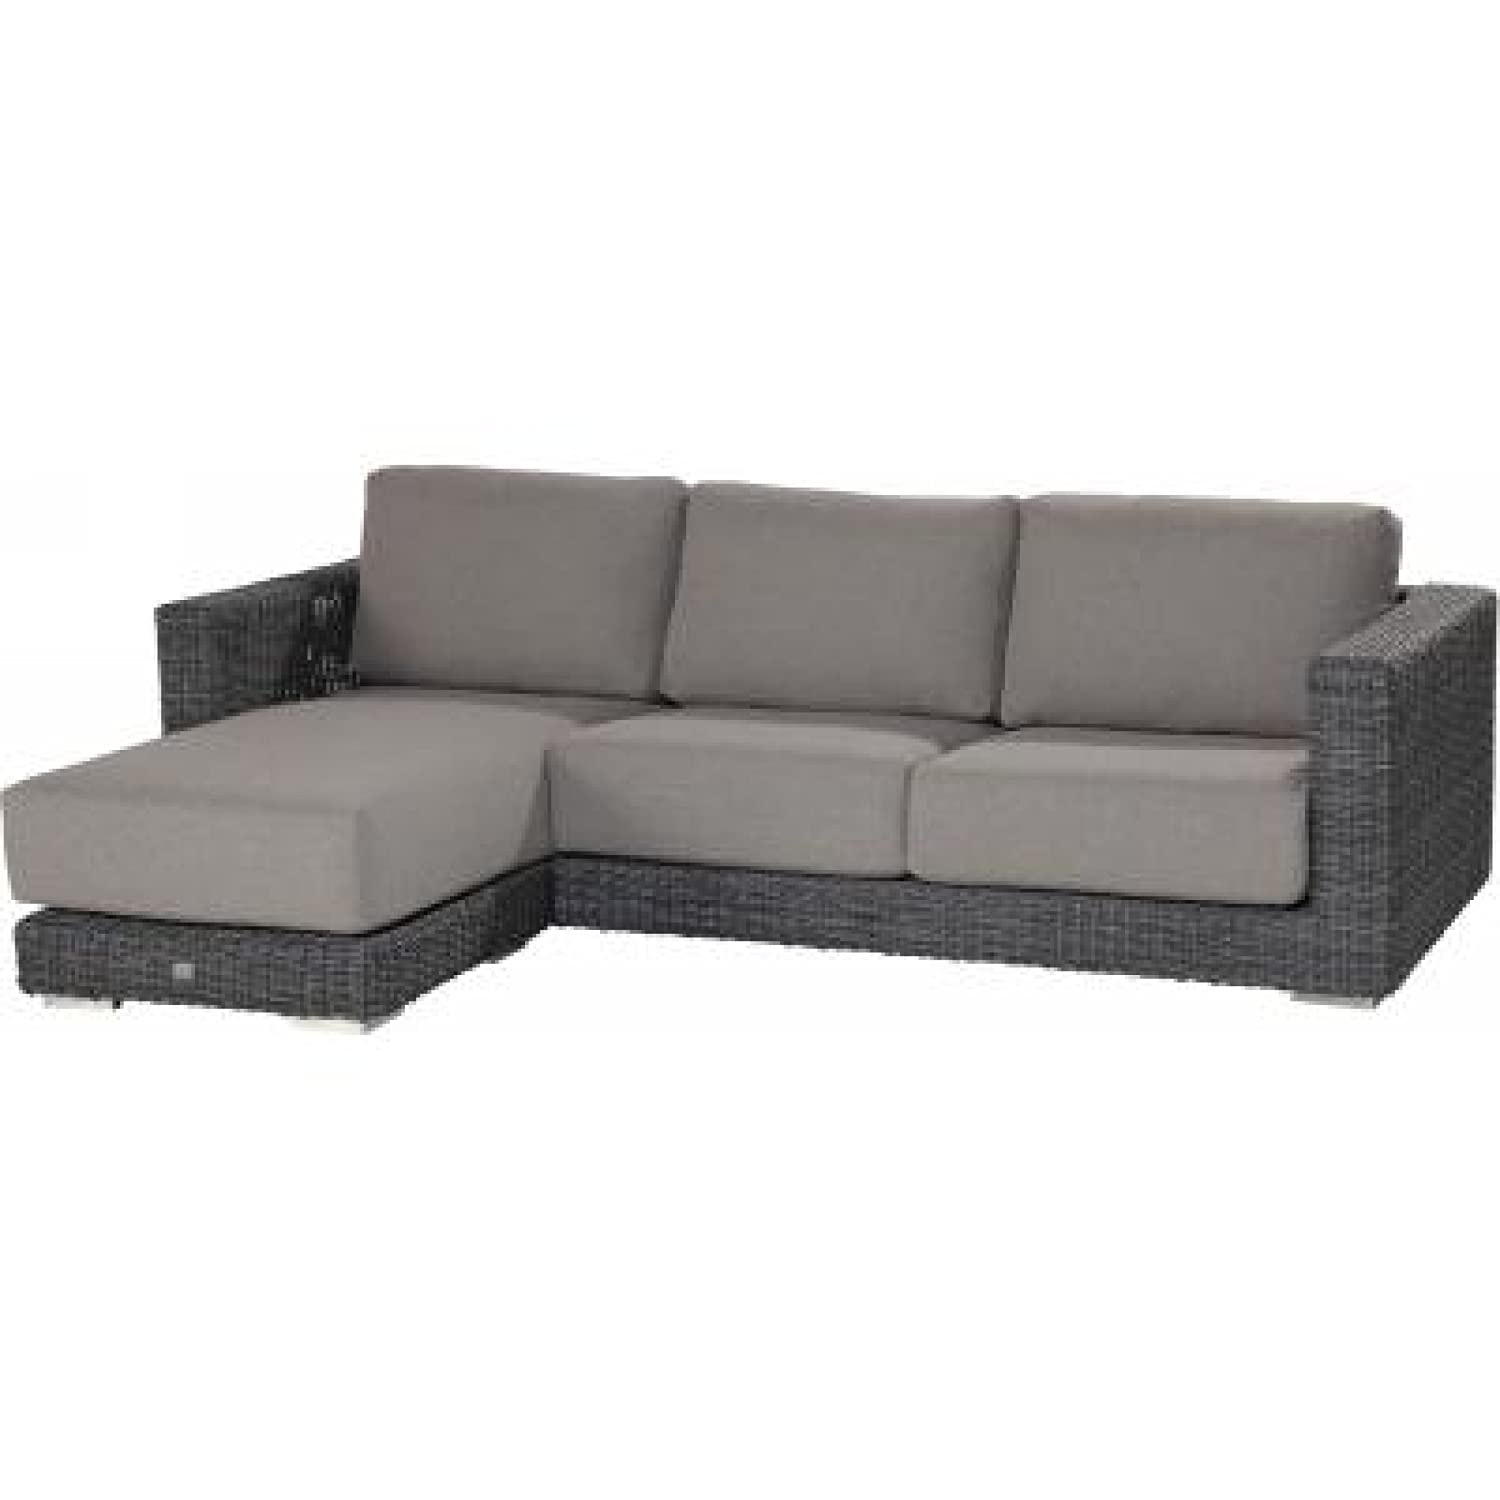 4Seasons Outdoor Somerset Ecksofa 4-Sitzer mit Fußhocker Polyrattan charcoal